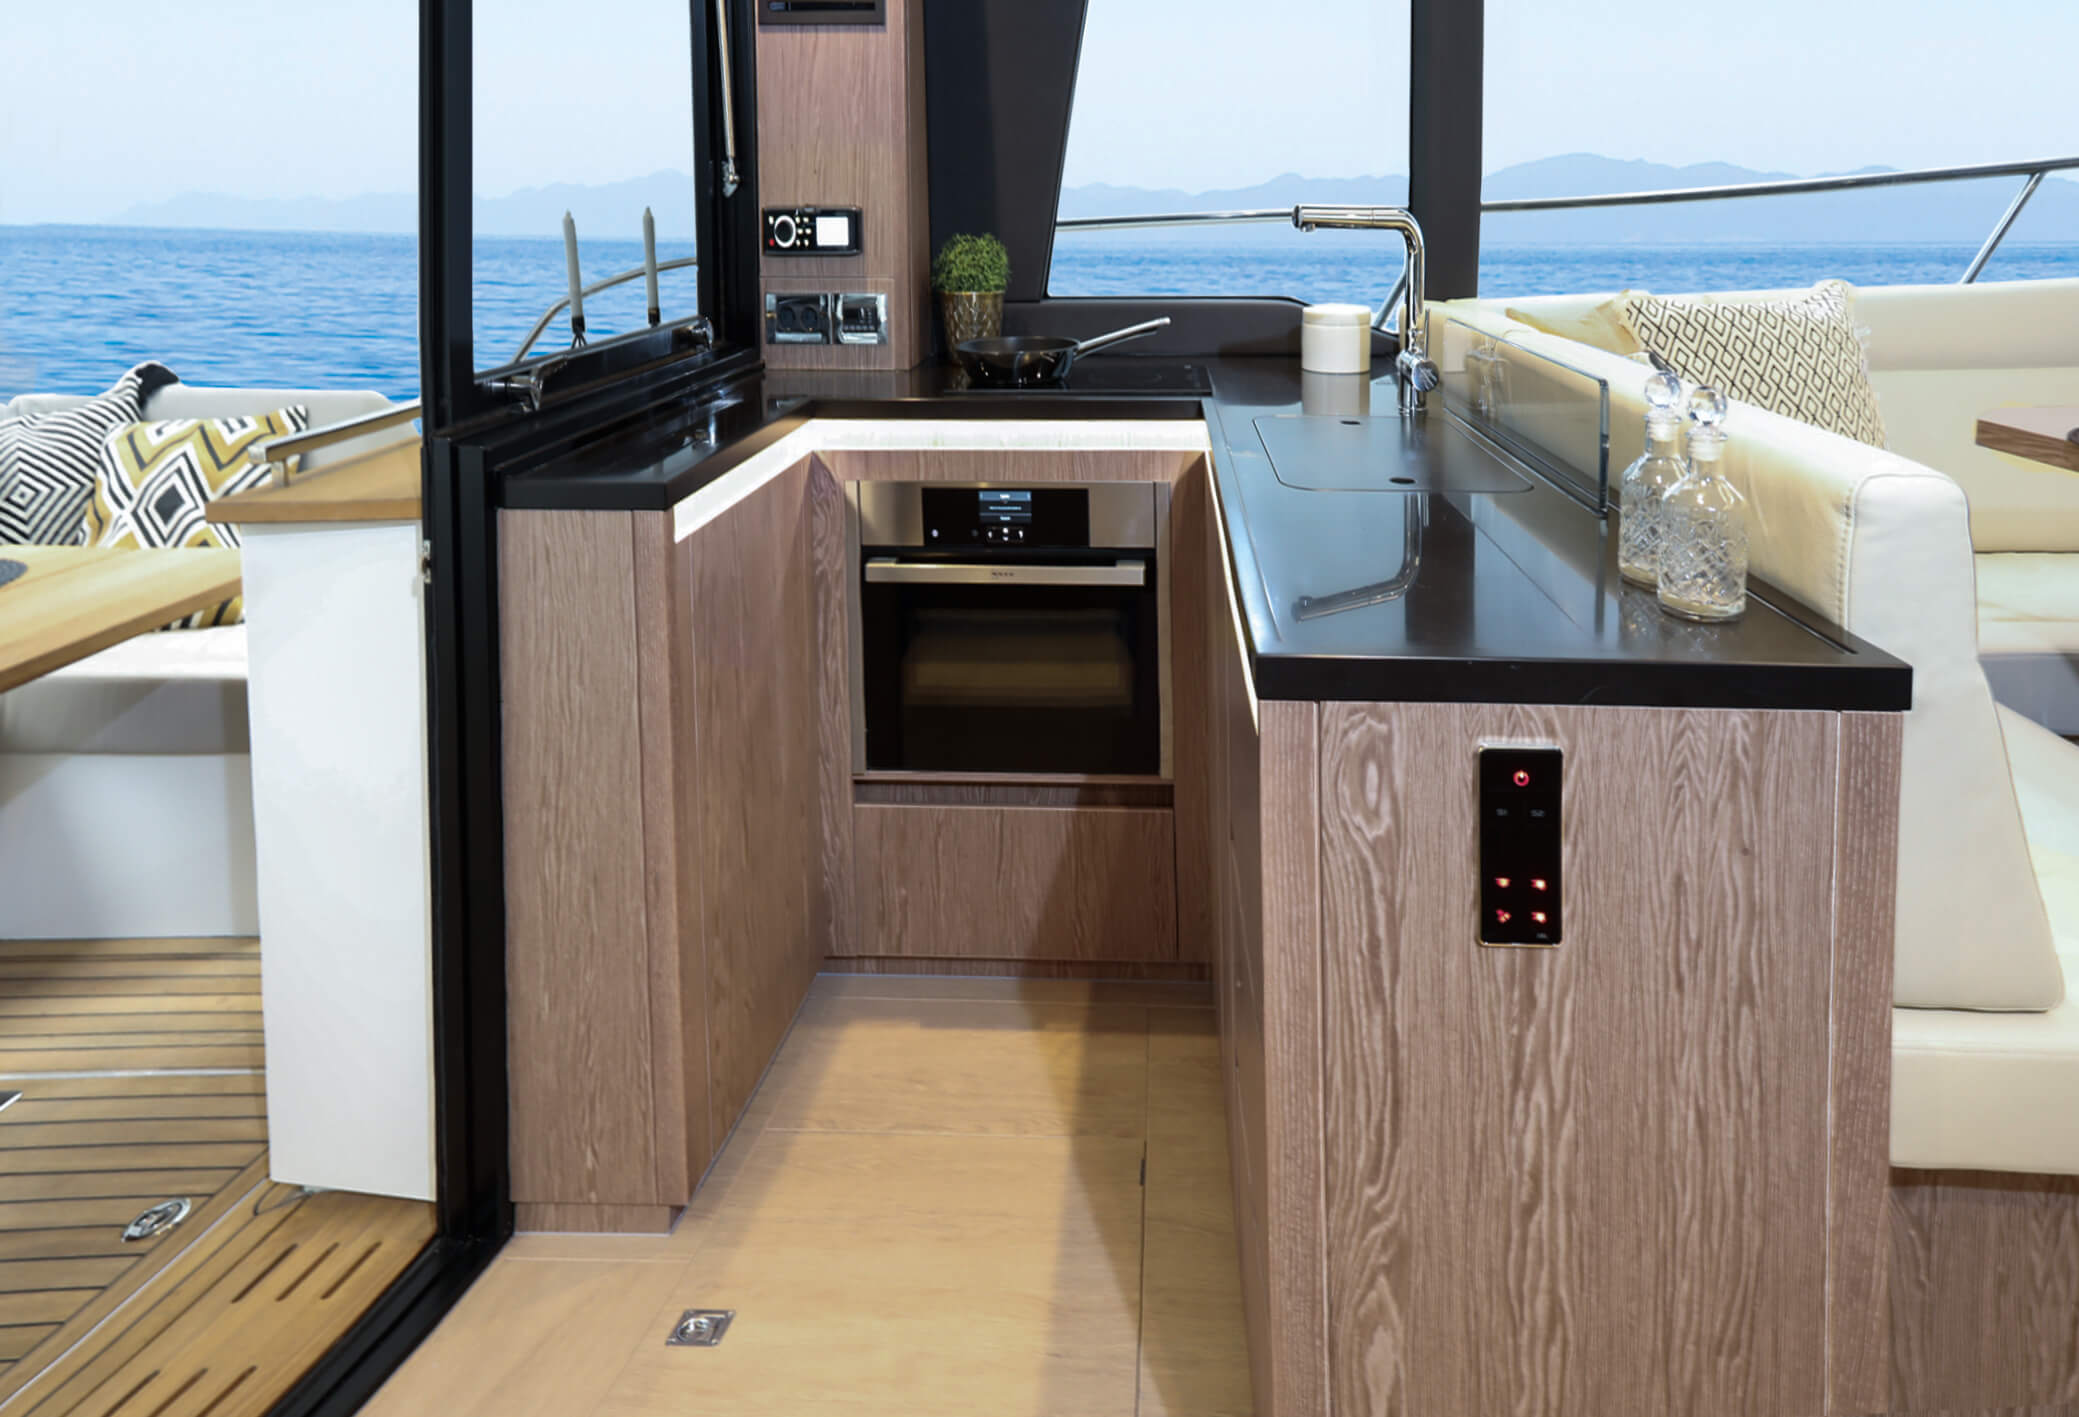 Sealine F430 Interno vista | Galley with stowage, fridge with freezer compartment, Electric cooktop with 2-rings, Electric oven with microwave function and sink. | Sealine